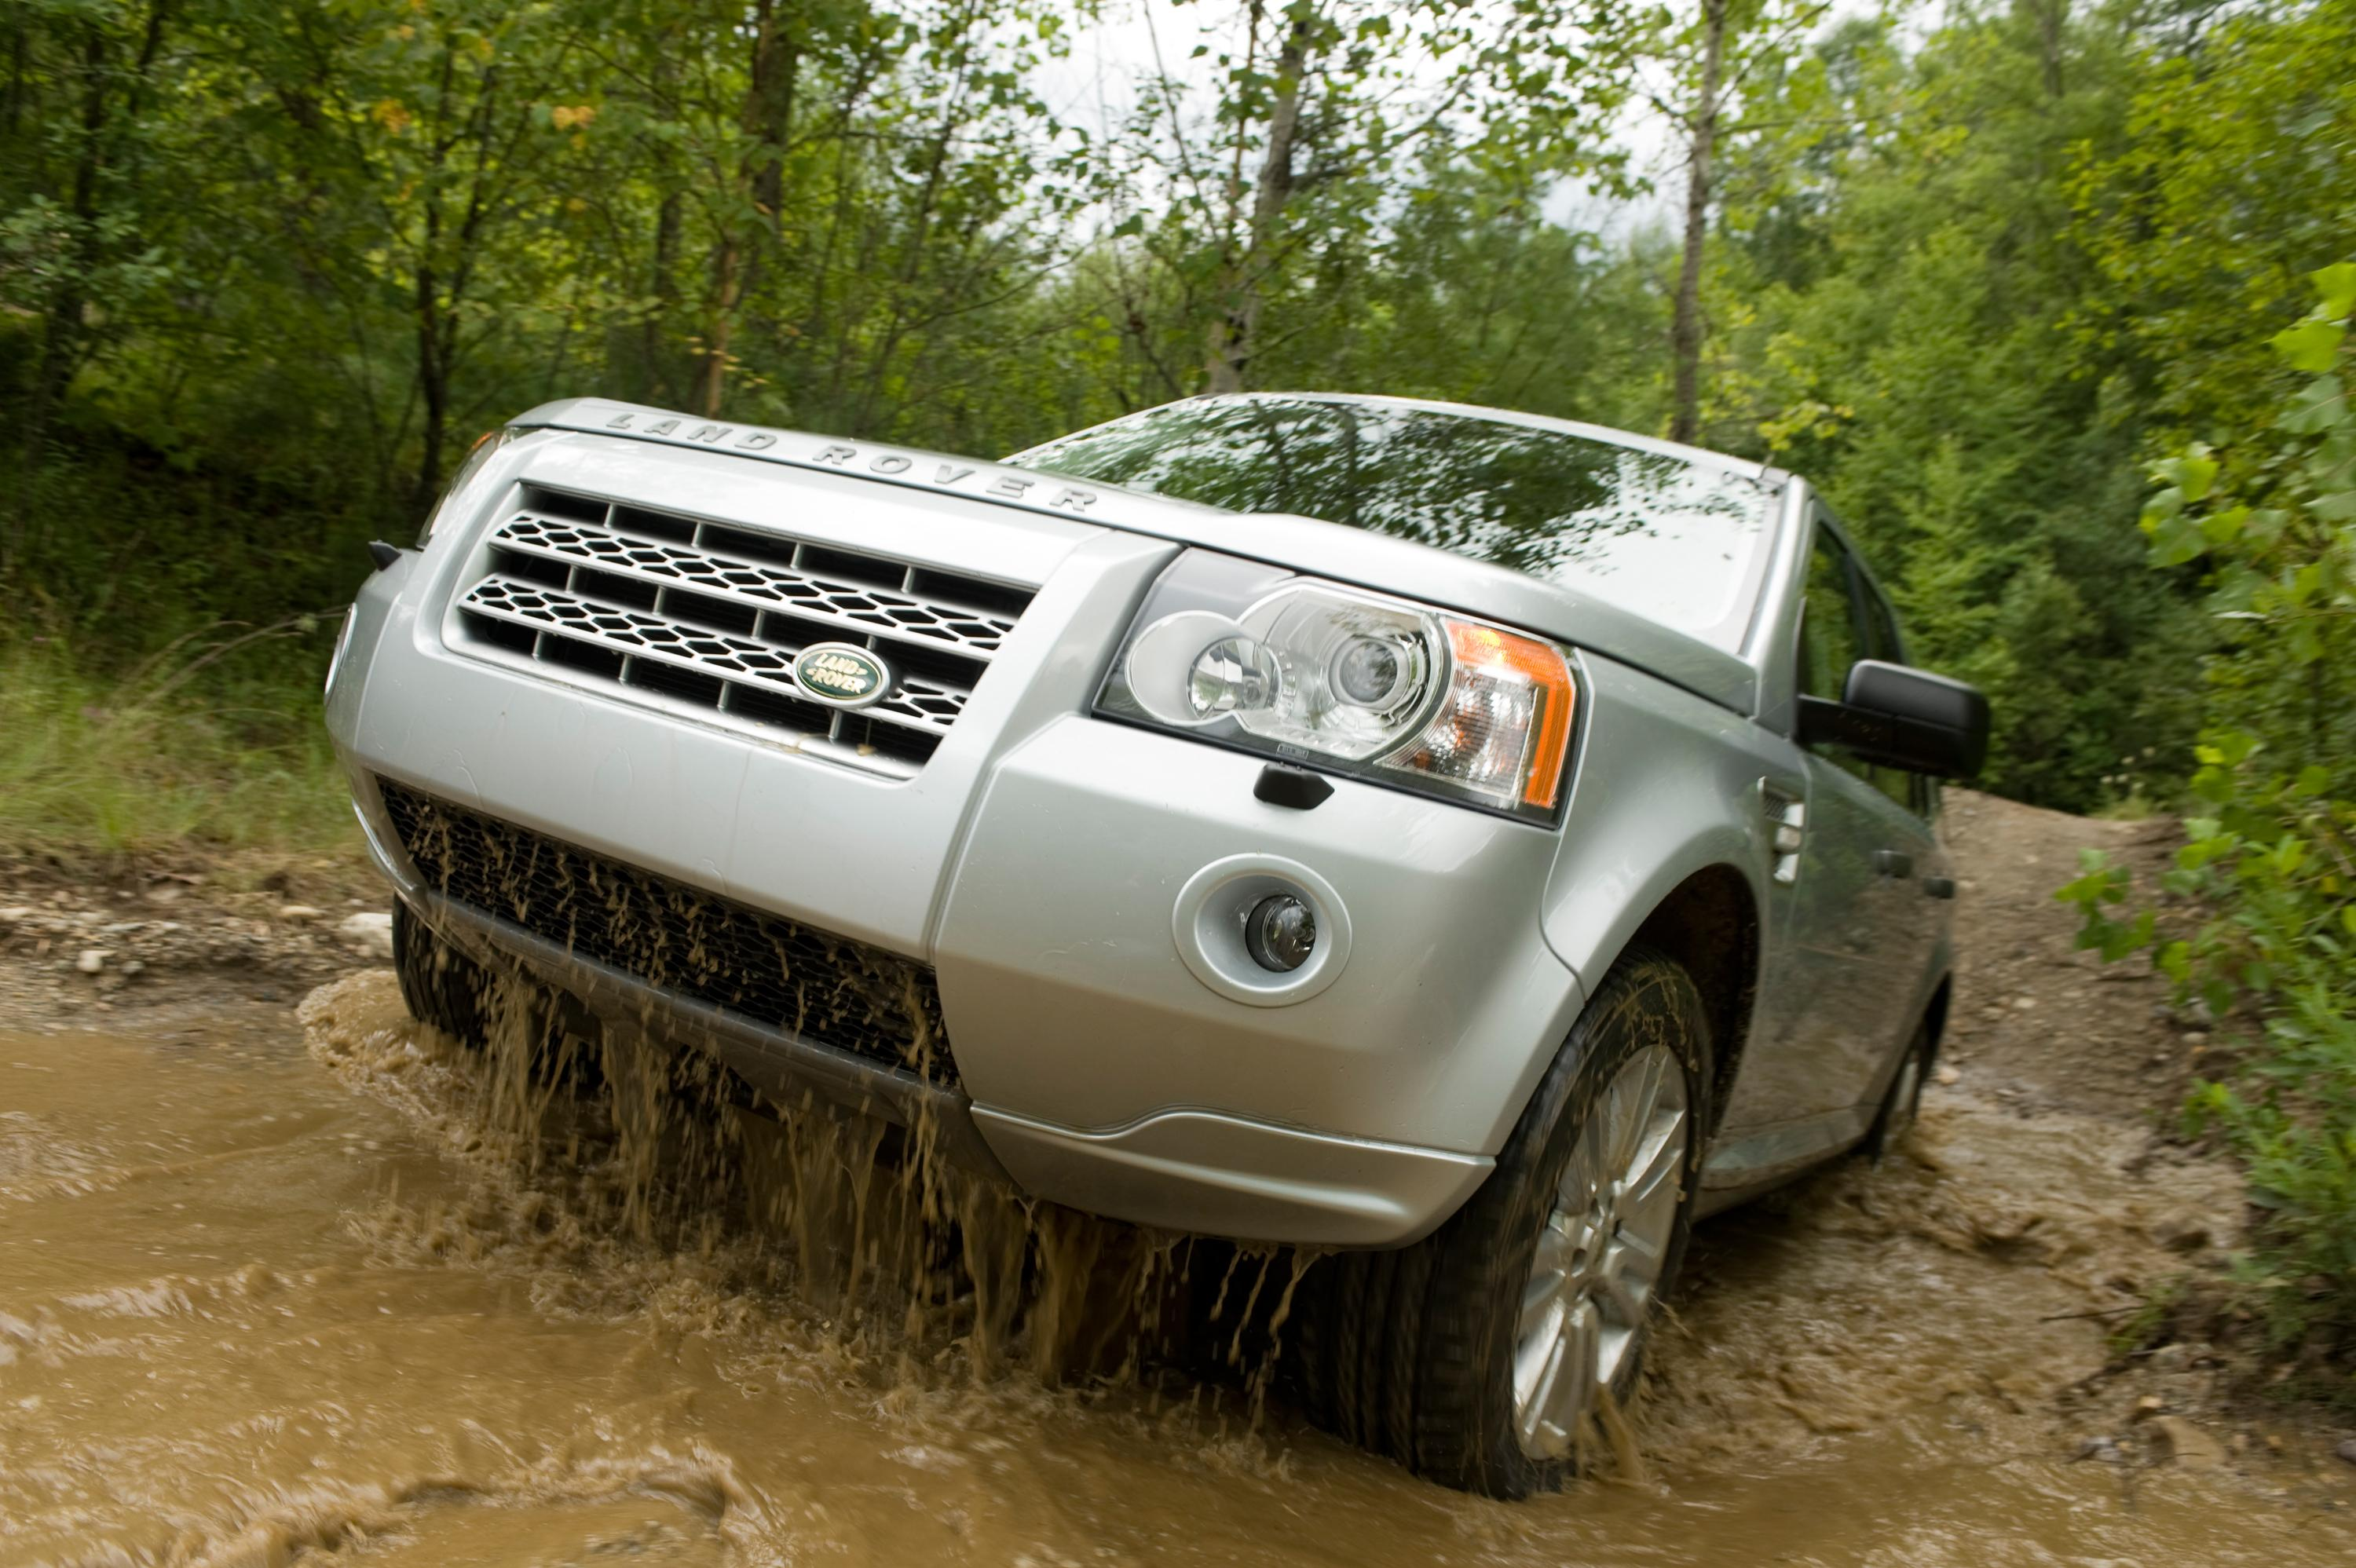 groovecar metallic composite land research suv price landrover hse large awd rover biscay blue